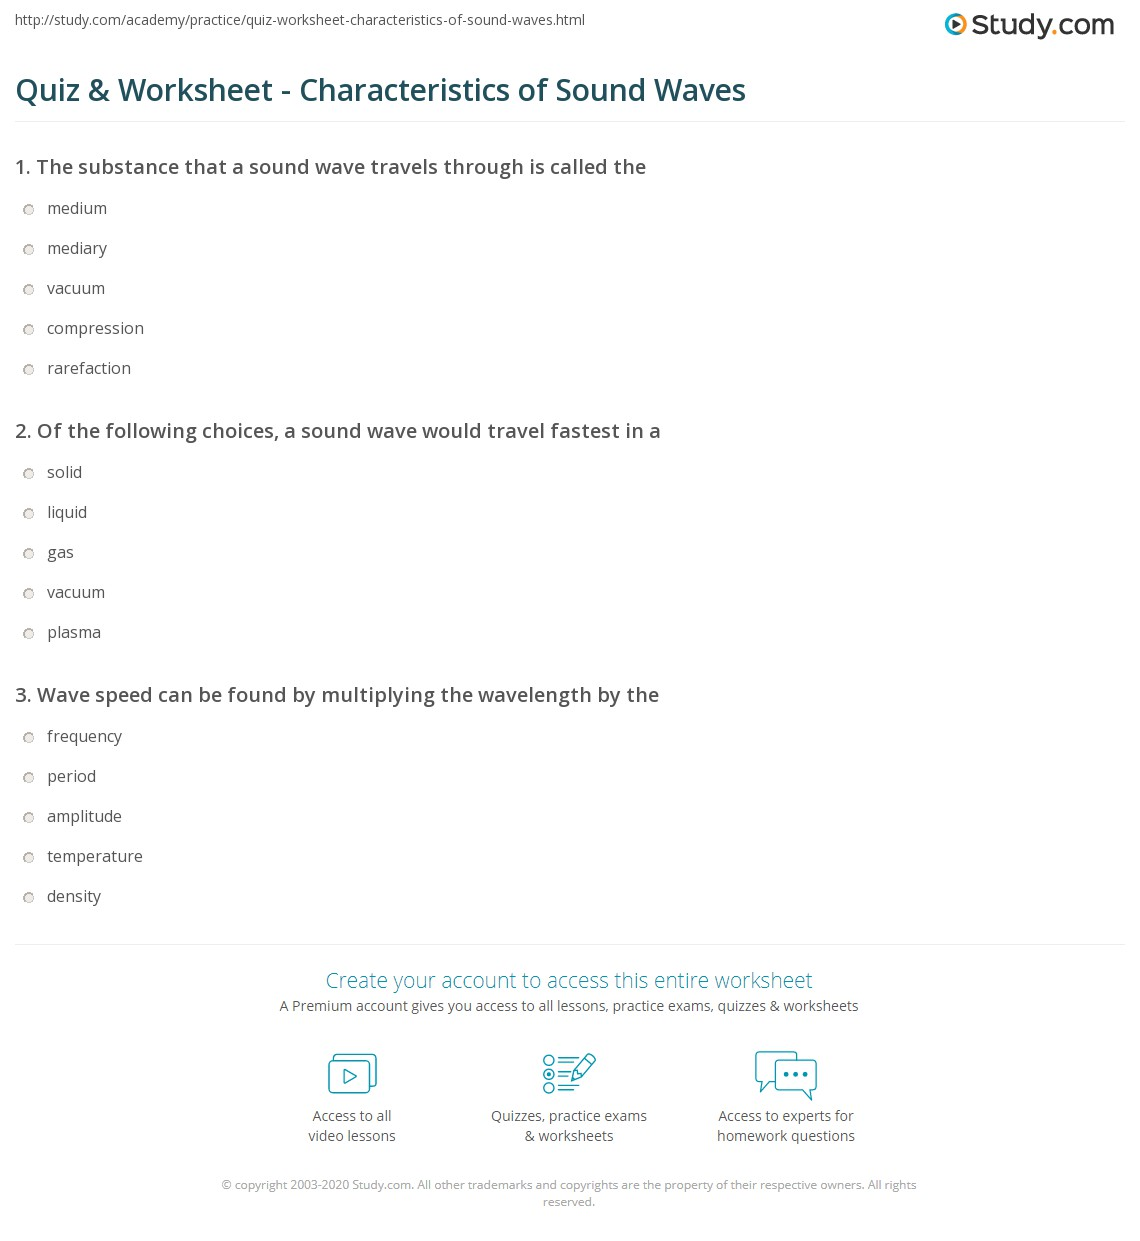 Quiz & Worksheet - Characteristics of Sound Waves | Study.com